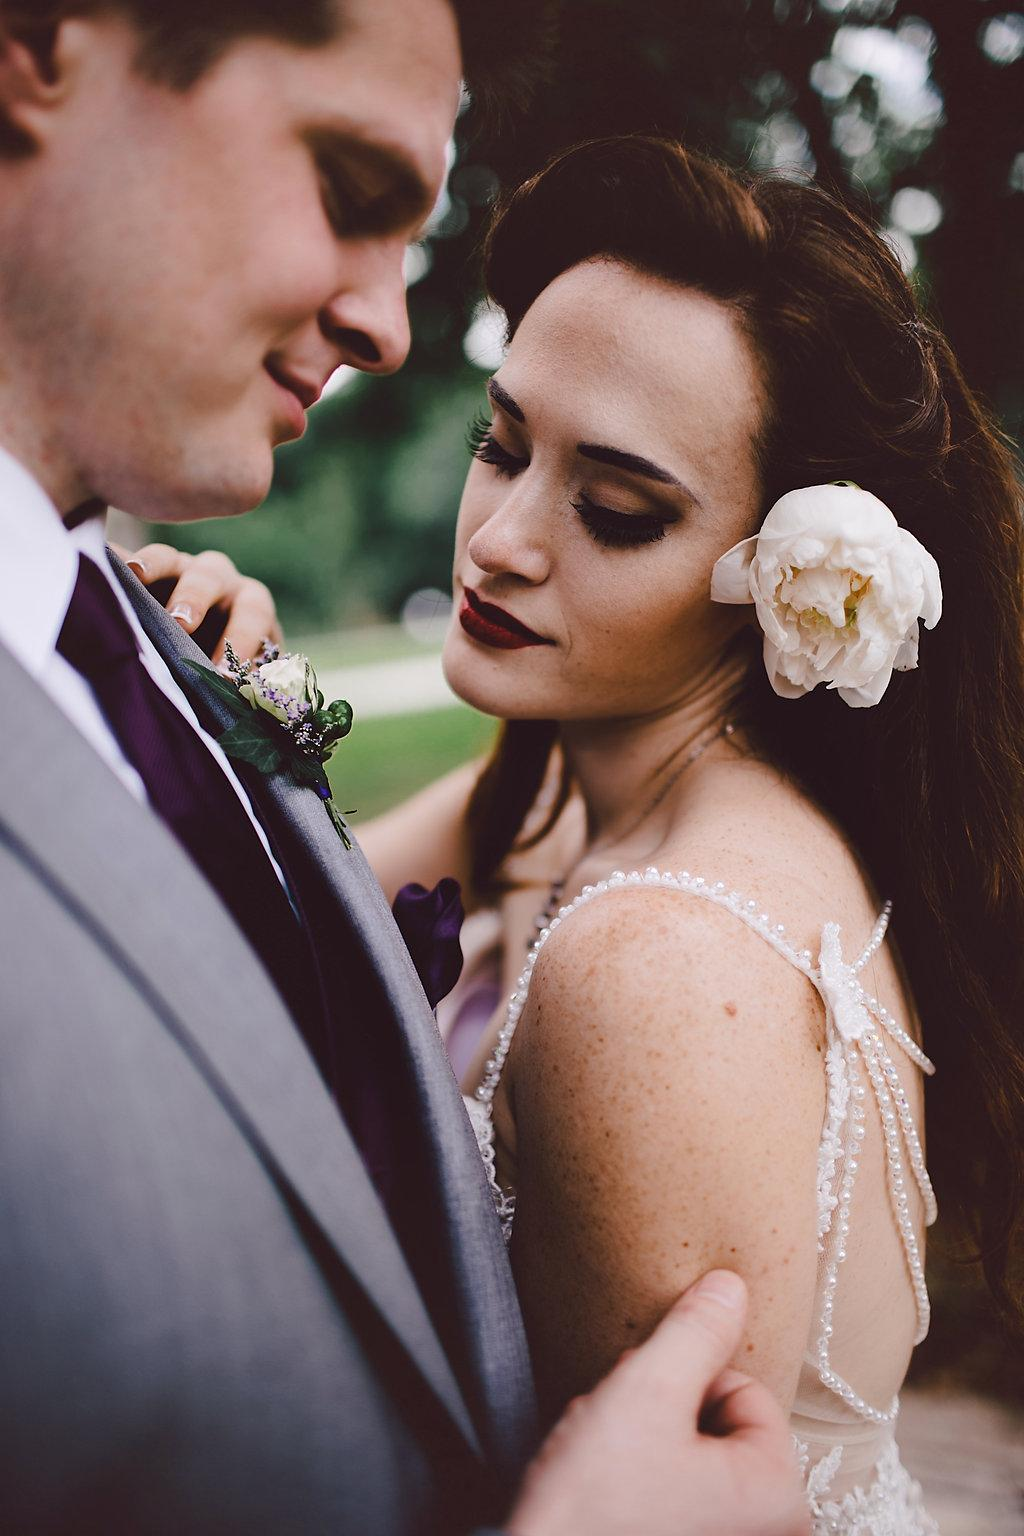 Bridgette and Scott's Wildly Romantic Wedding by Sarah B. Photography Philly In Love Best of Weddings 2016